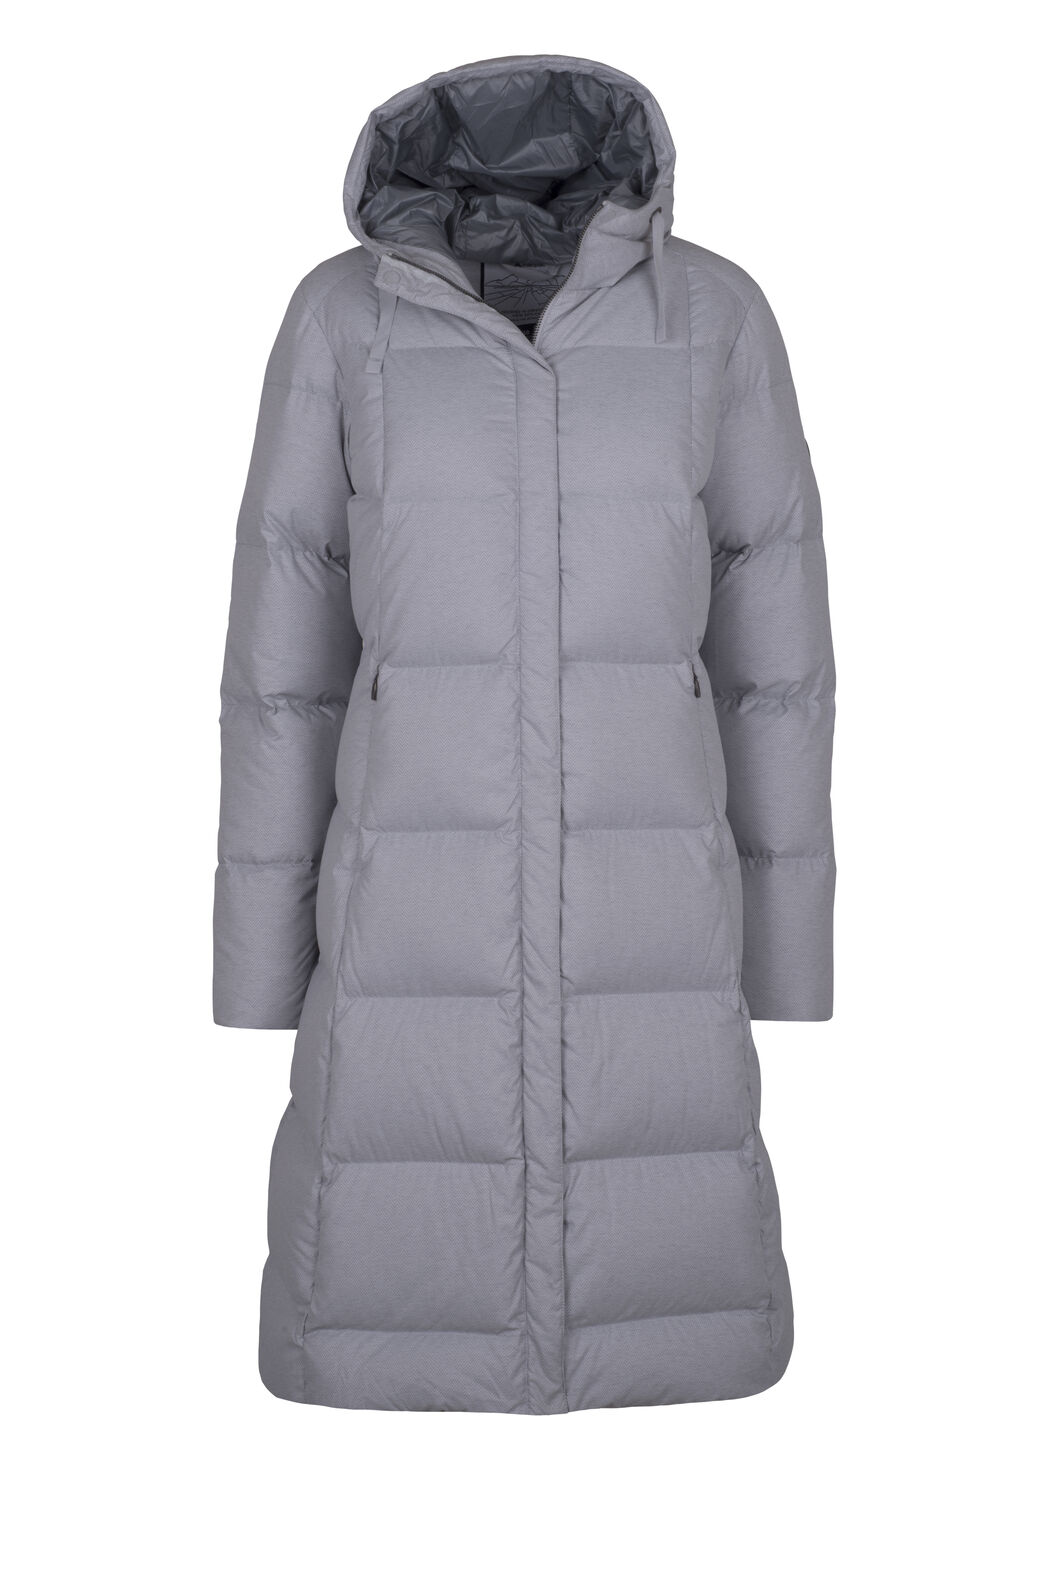 Macpac Parallax Coat - Women's, Snow White, hi-res